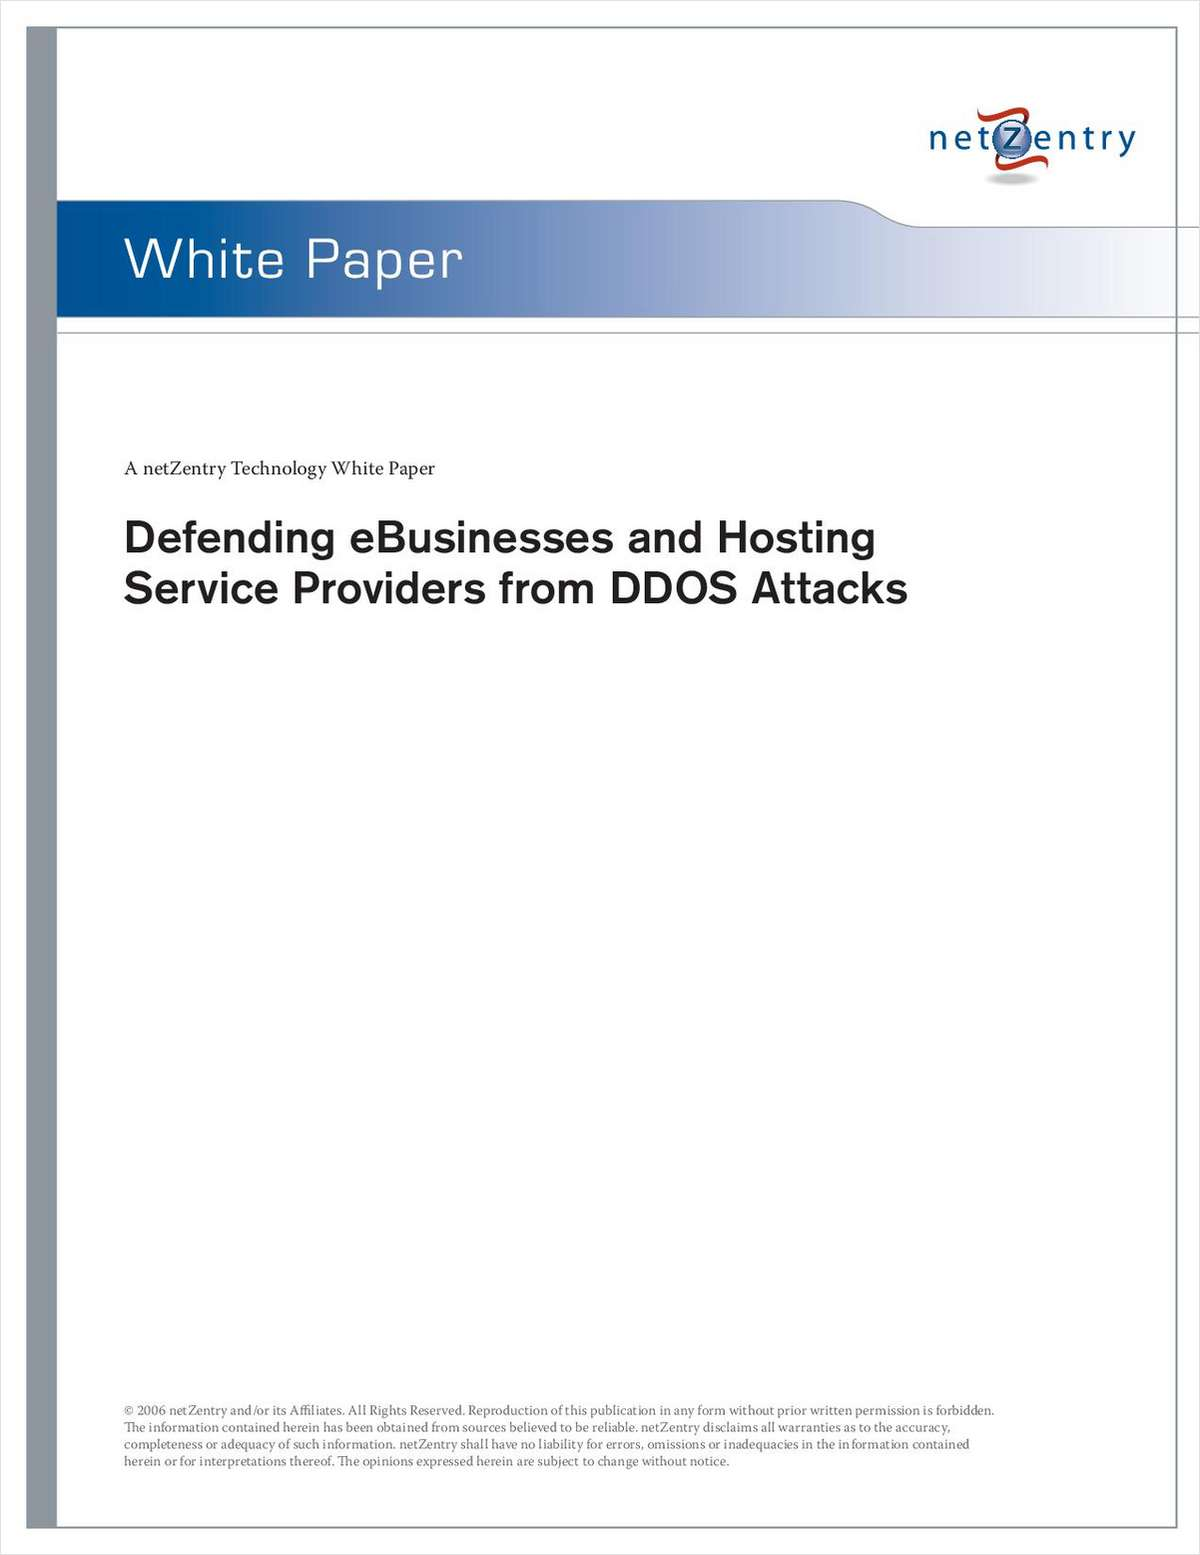 Protect your Servers from DDoS Attacks